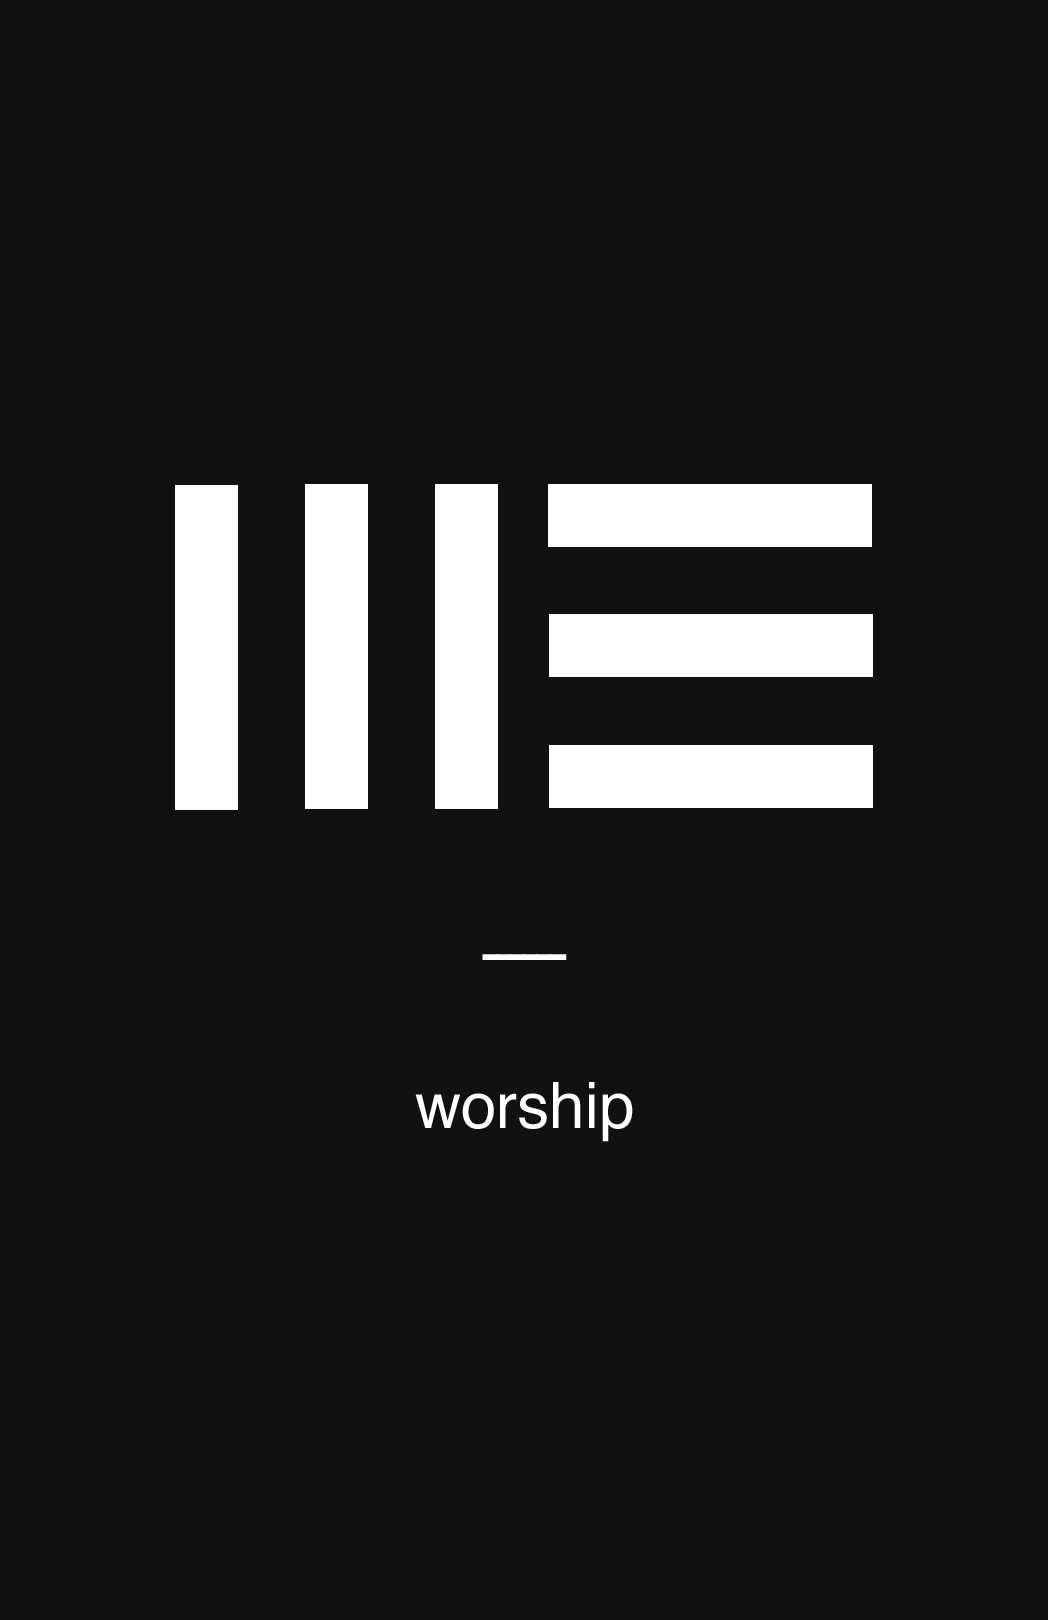 The concept for this design came from my worship pastor Tim as he had the idea of making a brand for a worship series that could look like a me or a we before the word worship. It puts into perspective the idea of what worship can be in our lives.